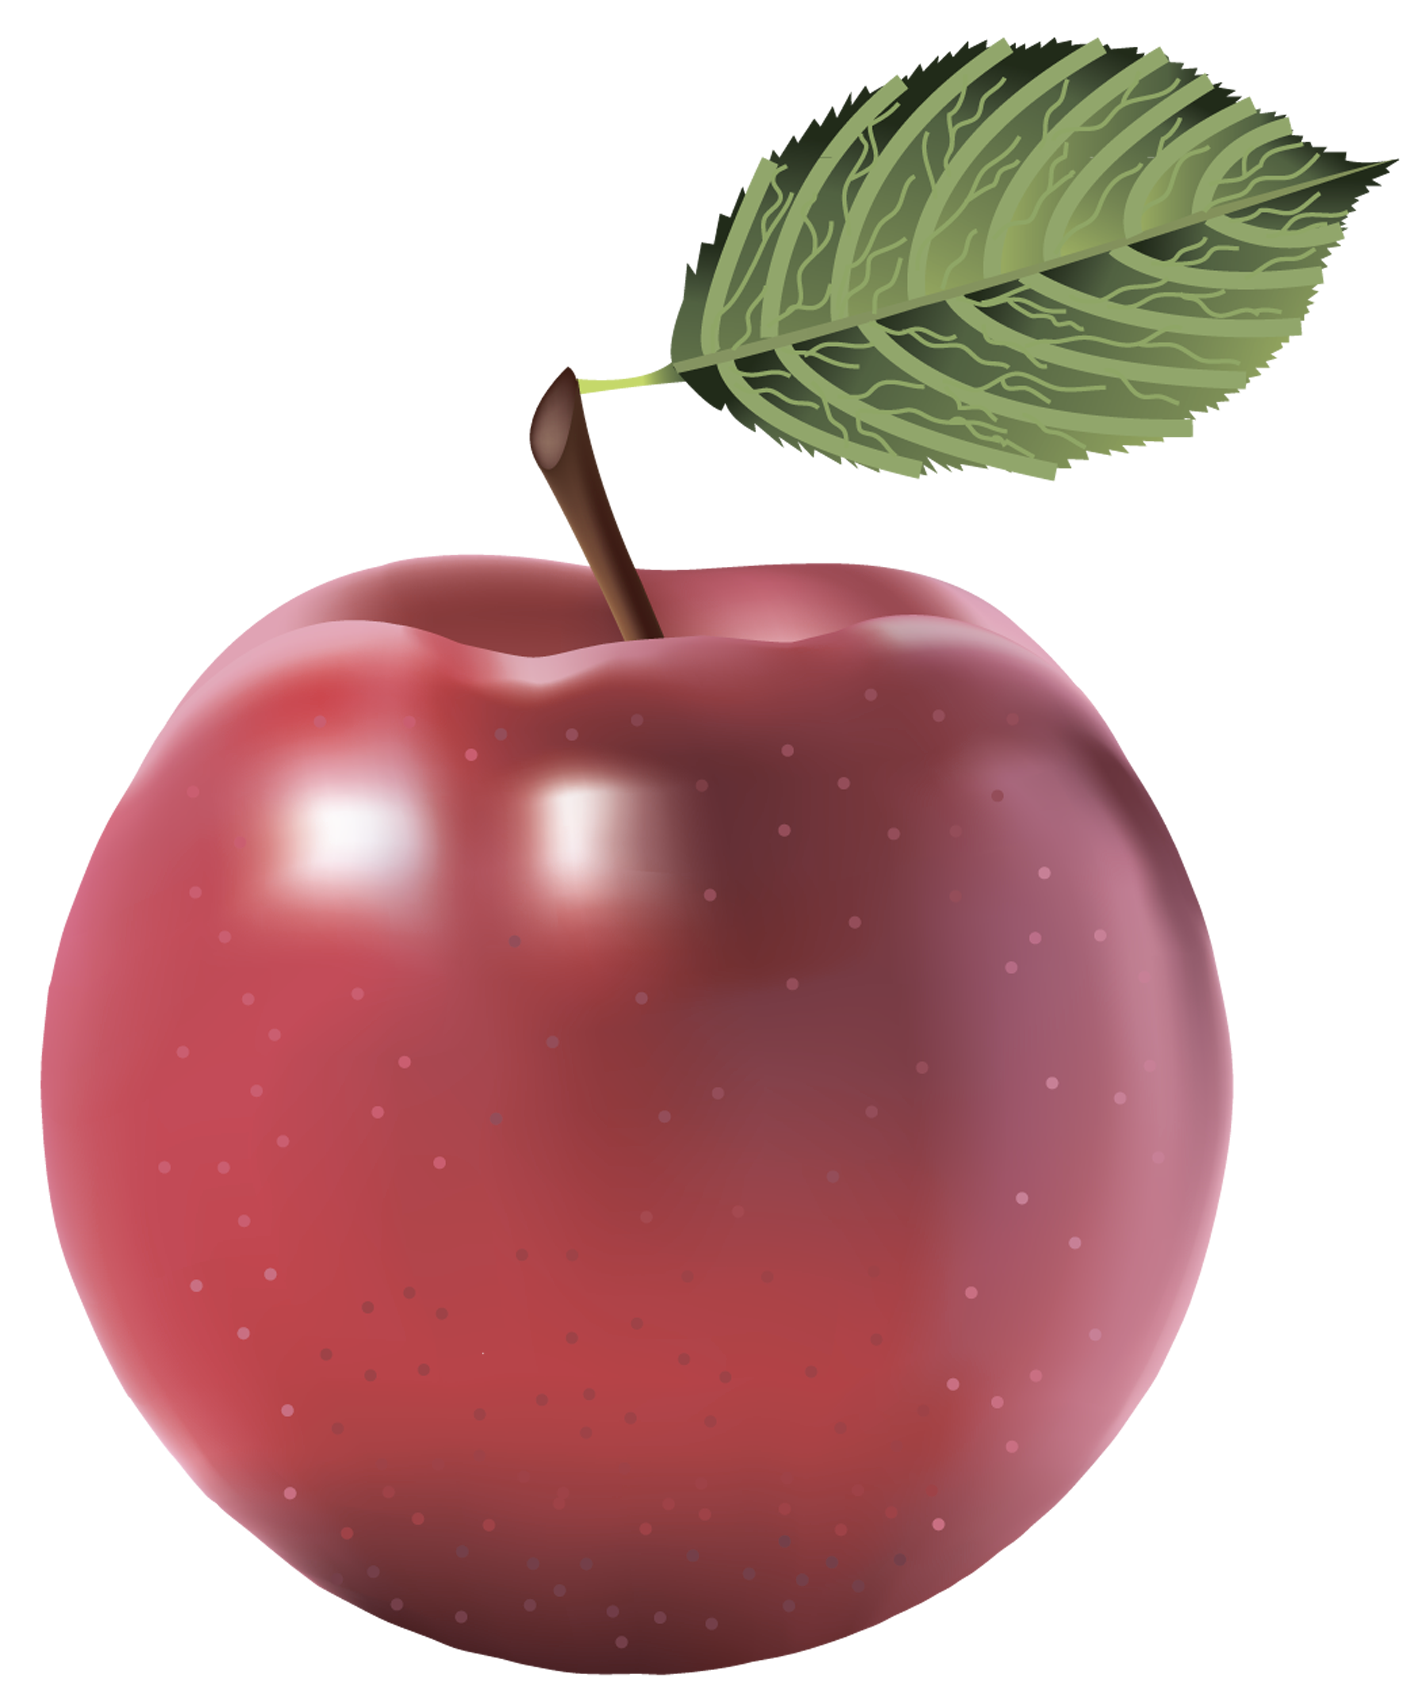 Clipart apple transparent background. Large red painted png